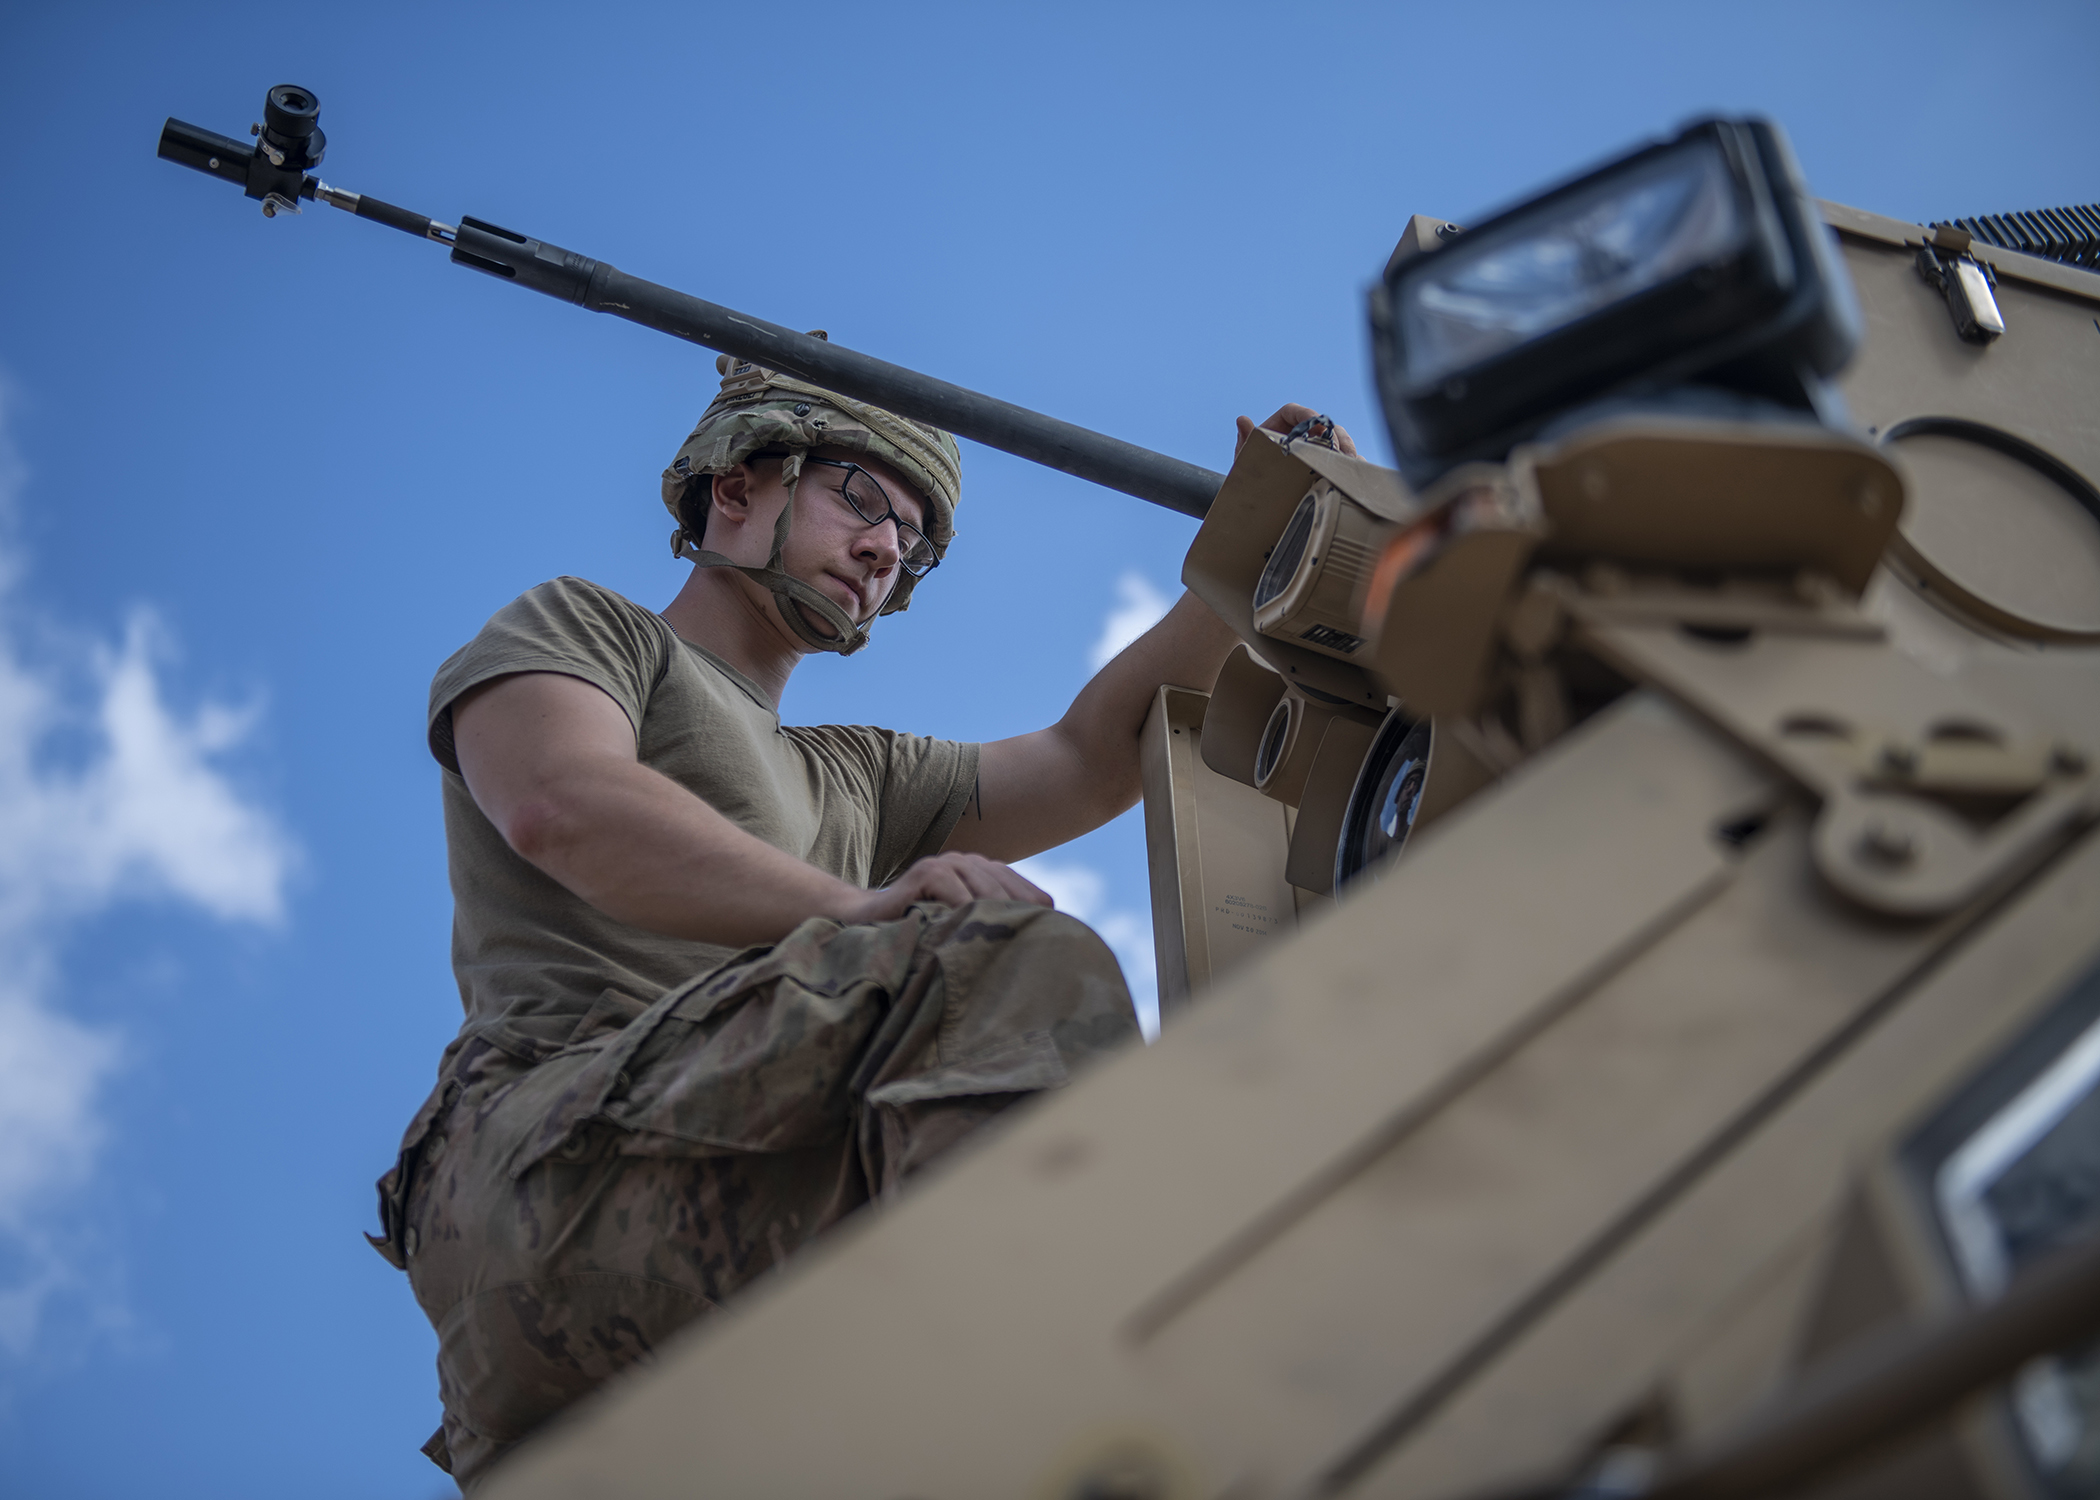 U.S. Army Spc. Kaleb Steffens, gunner, Delta Company, 4th Platoon, 1st Battalion 141st Infantry Regiment Task Force Alamo, Texas National Guard, deployed to Combined Joint Task Force-Horn of Africa (CJTF-HOA), Djibouti, prepares a .50-caliber Common Remotely Operated Weapon Station on top of a Mine-Resistant Ambush-Protected vehicle during training at a military range in Djibouti, Dec. 15, 2018. Task Force Alamo is responsible for rapidly deploying in response to any crisis threatening U.S. personnel or property throughout CJTF-HOA, an area nearly half the size of the continental United States. (U.S. Air Force photo by Tech. Sgt. Shawn Nickel)